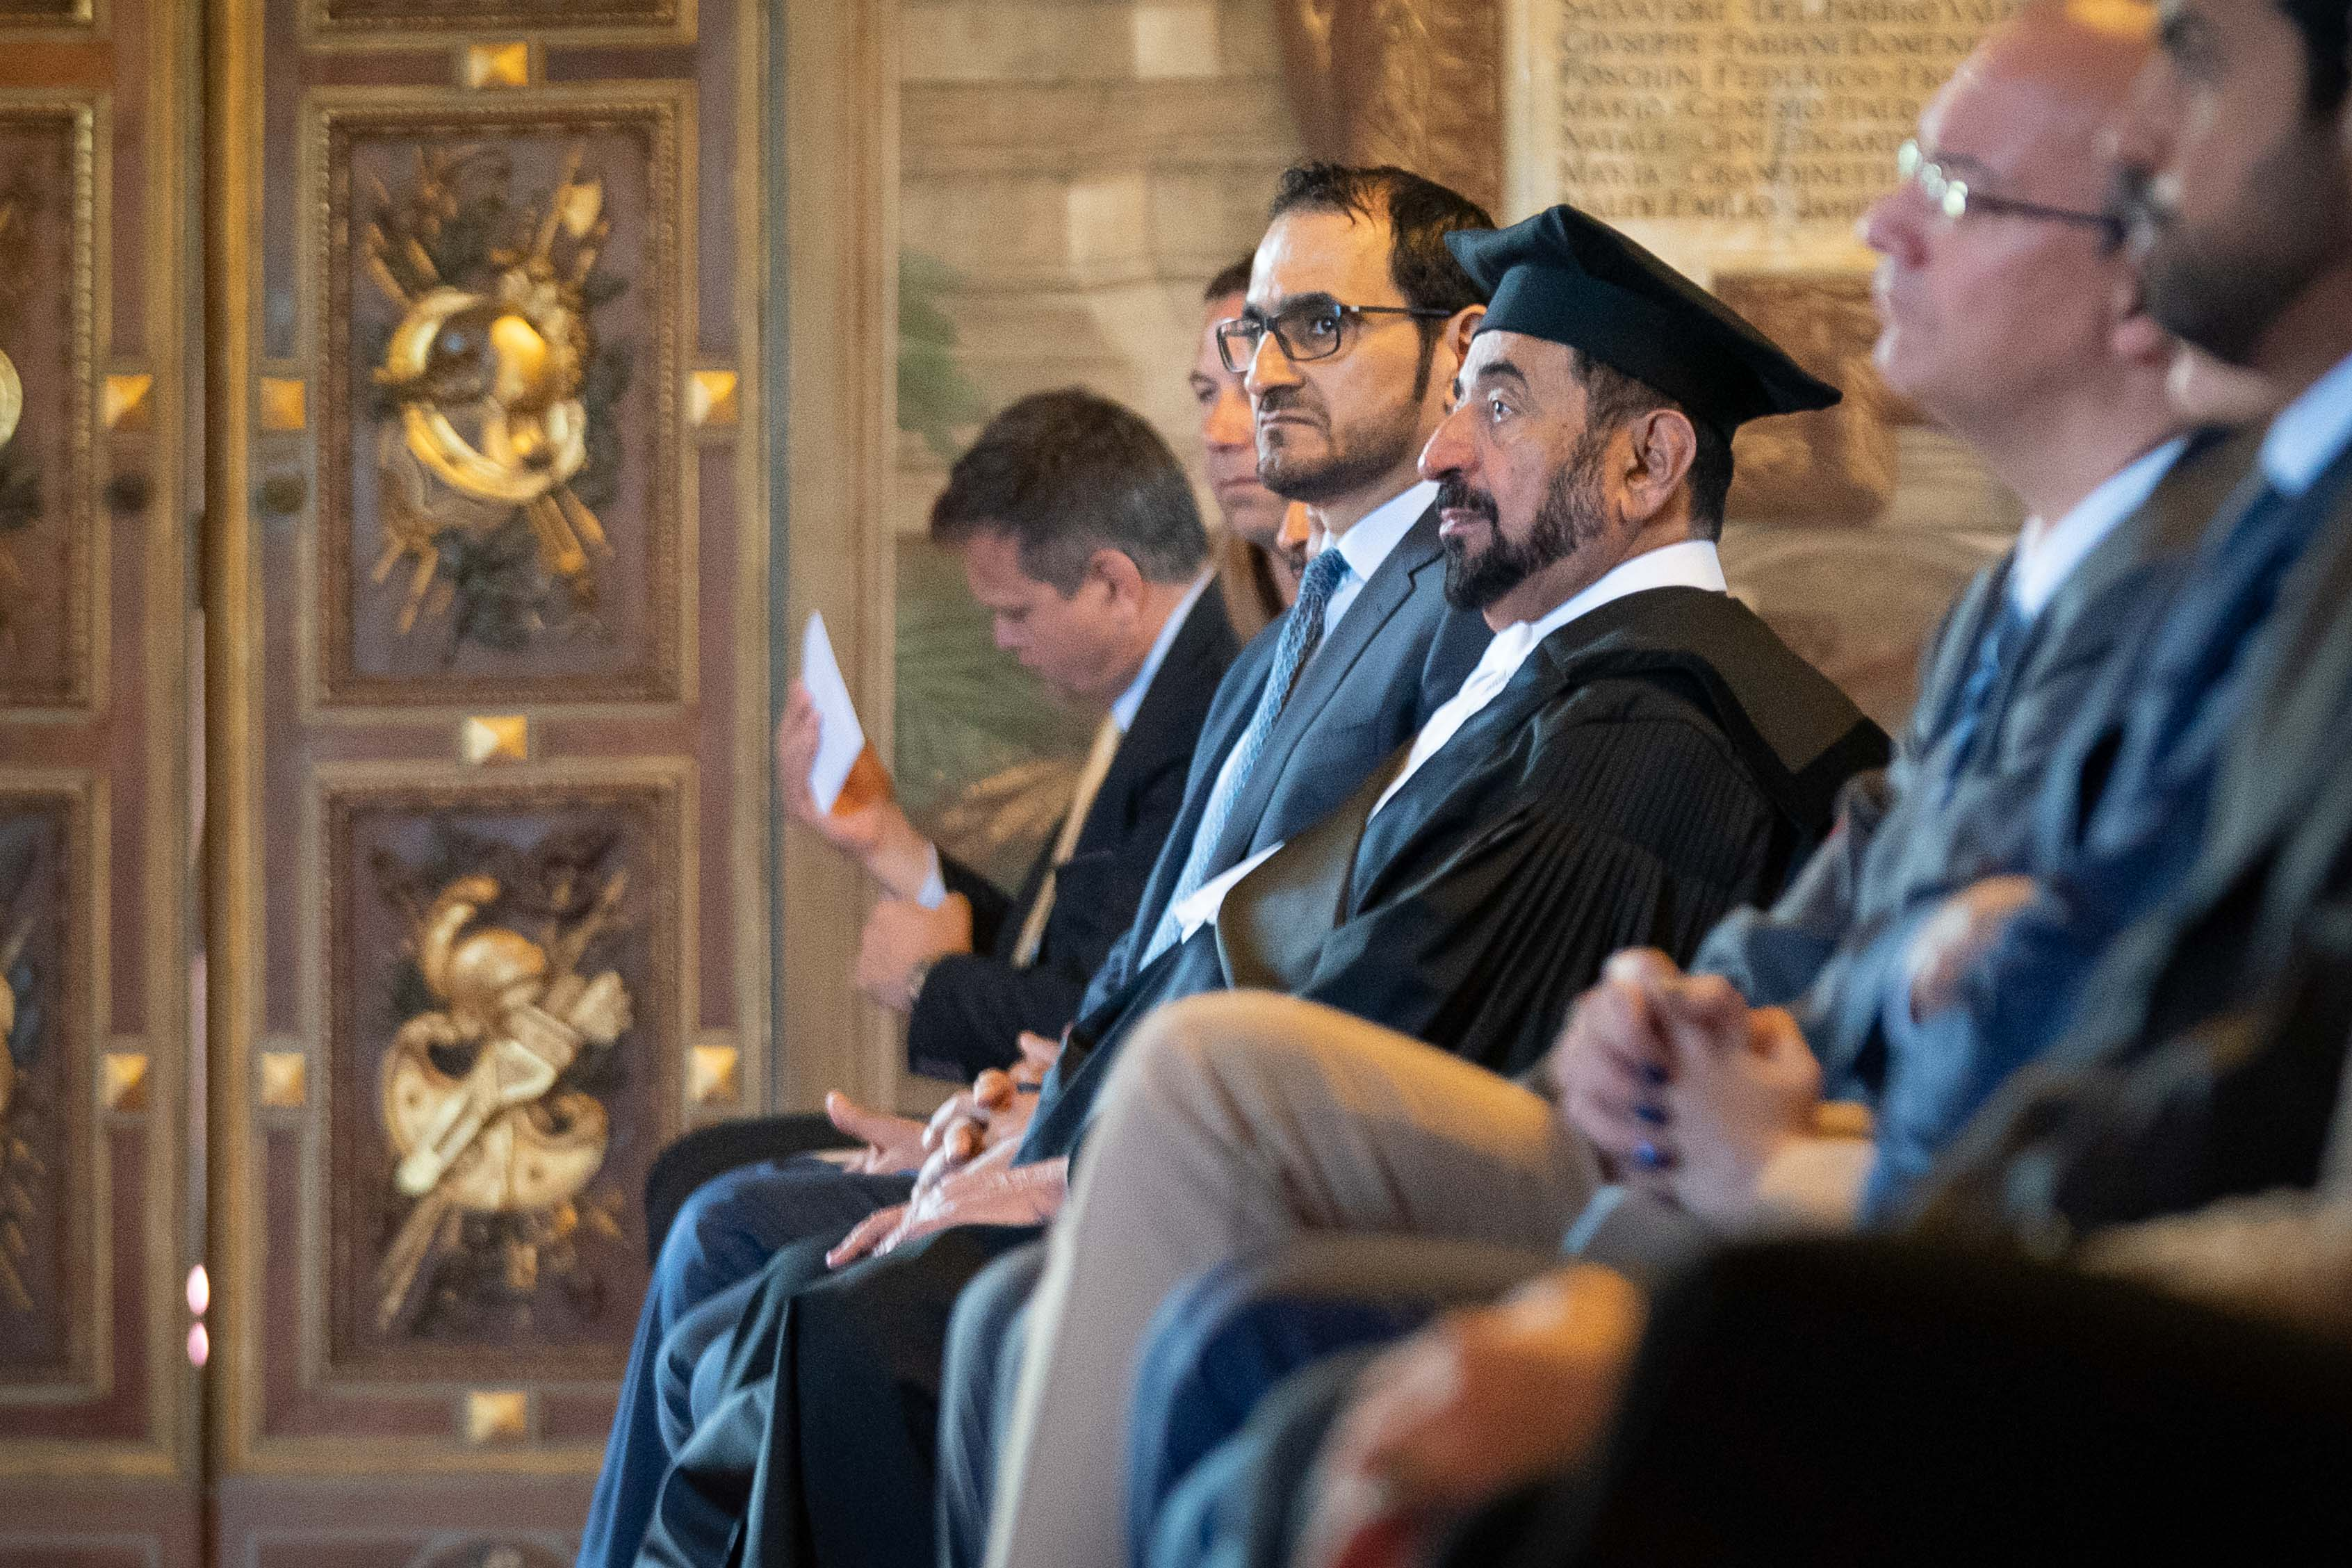 ruler of sharjah receives honorary doctorate from leading turin universities  4